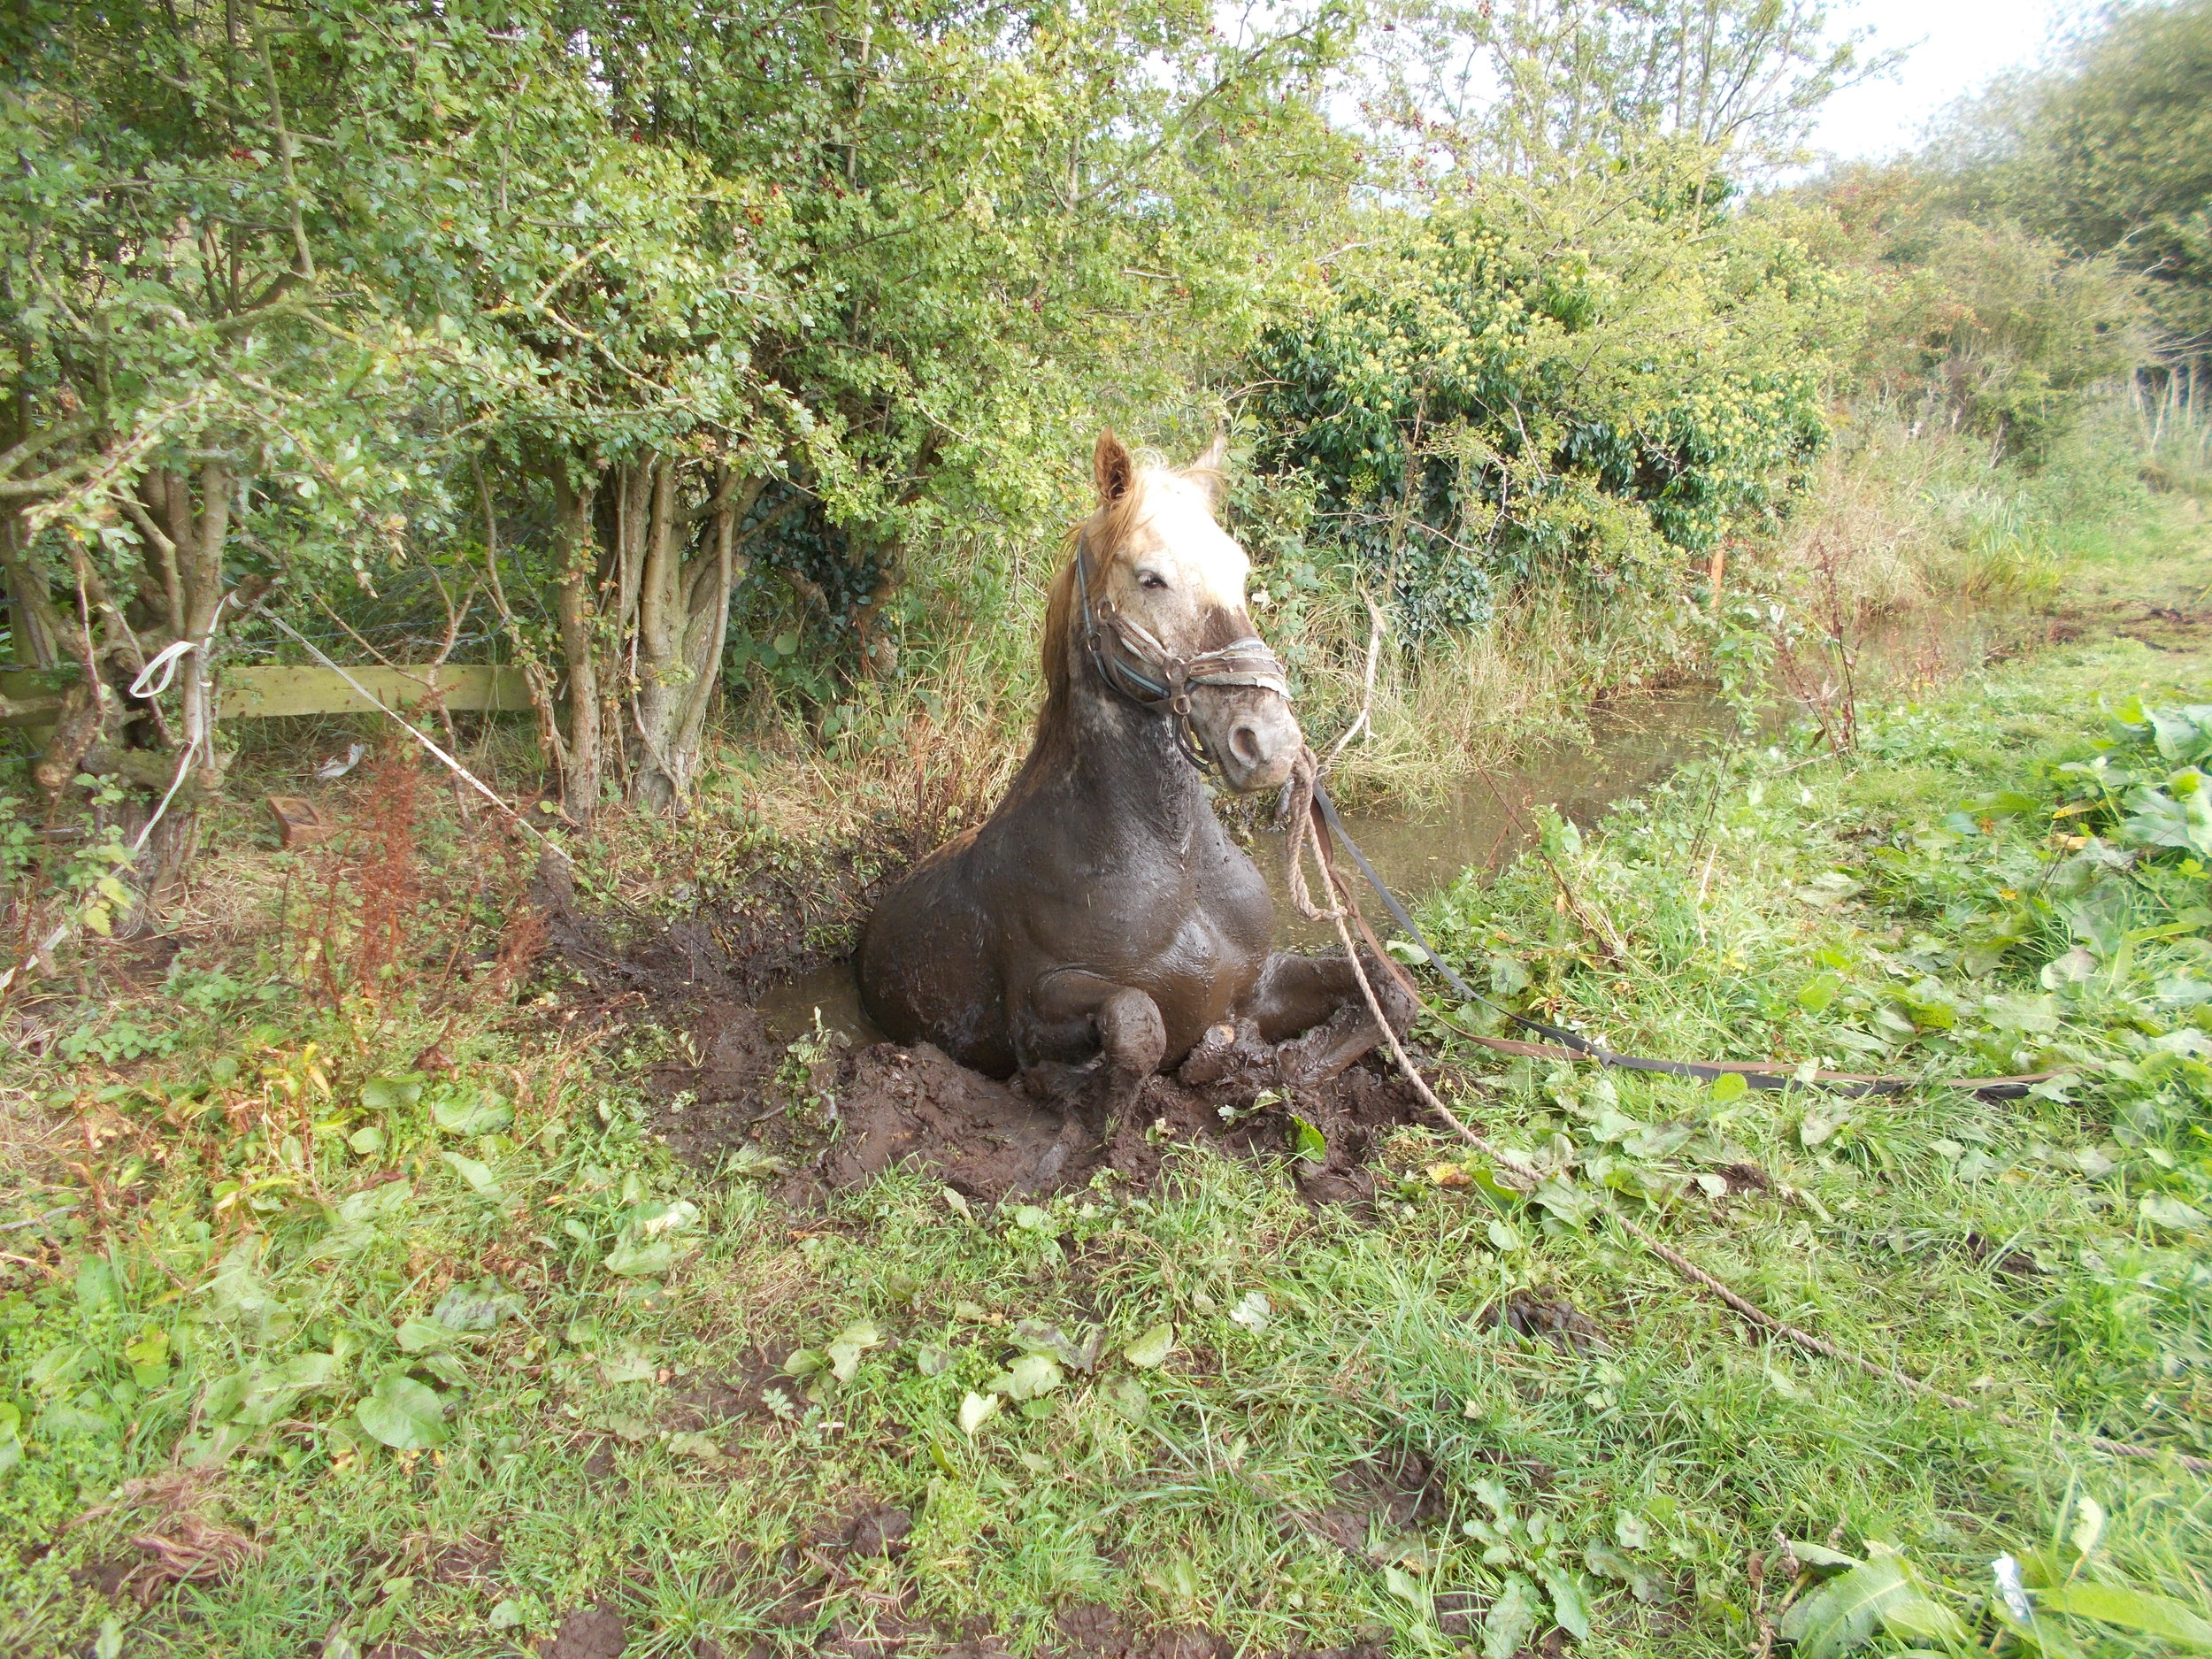 The horse was found stuck in deep mud (Picture: Cheshire Fire and Rescue Service)